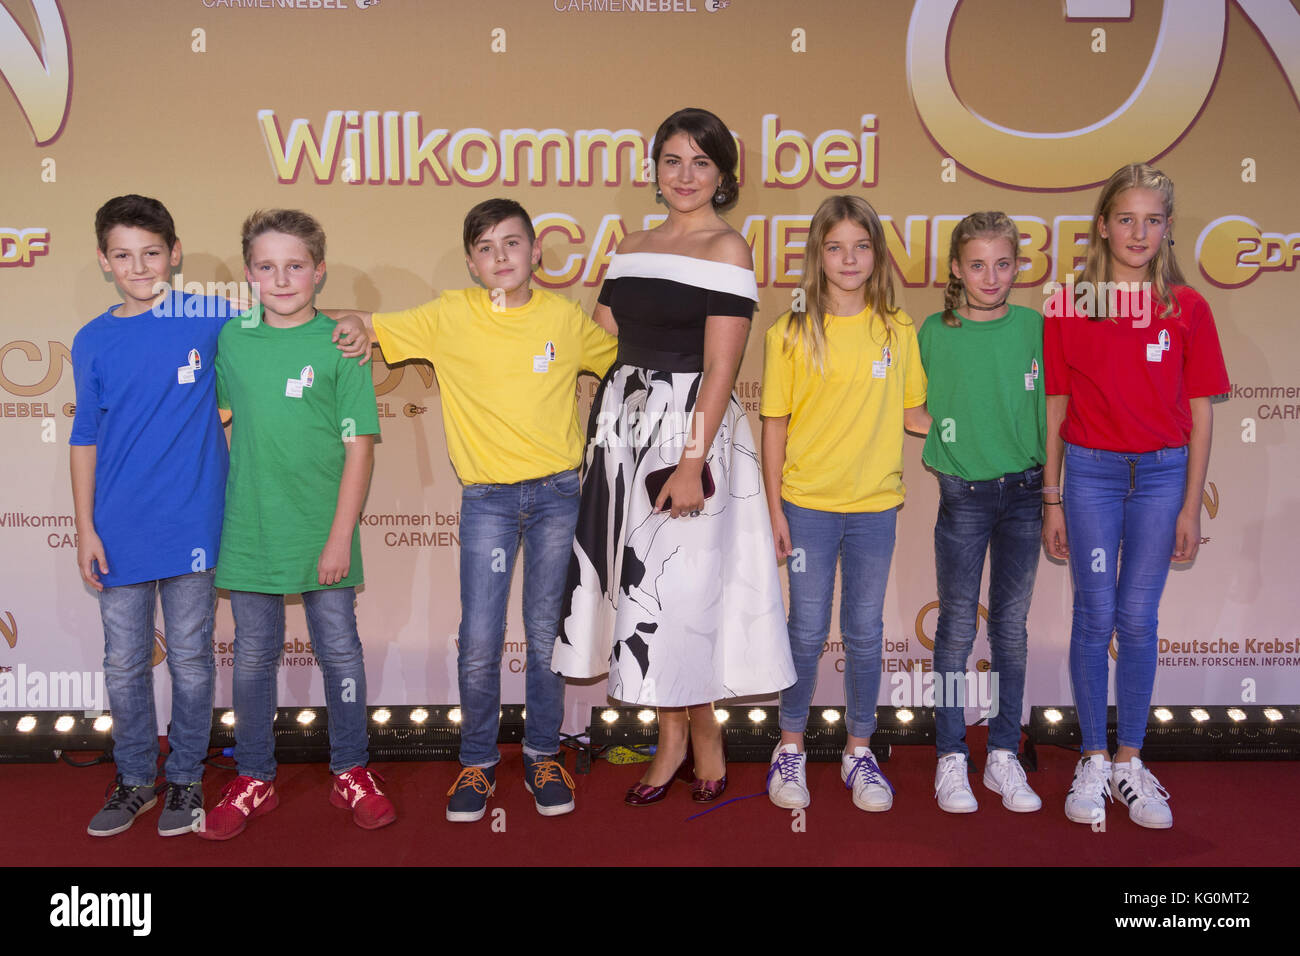 German ZDF live TV show  Willkommen bei Carmen Nebel  at TUI Arena     German ZDF live TV show  Willkommen bei Carmen Nebel  at TUI Arena   Featuring  Nadja Motov  Stacking Kids Where  Hamburg  Germany When  30 Sep  2017 Credit